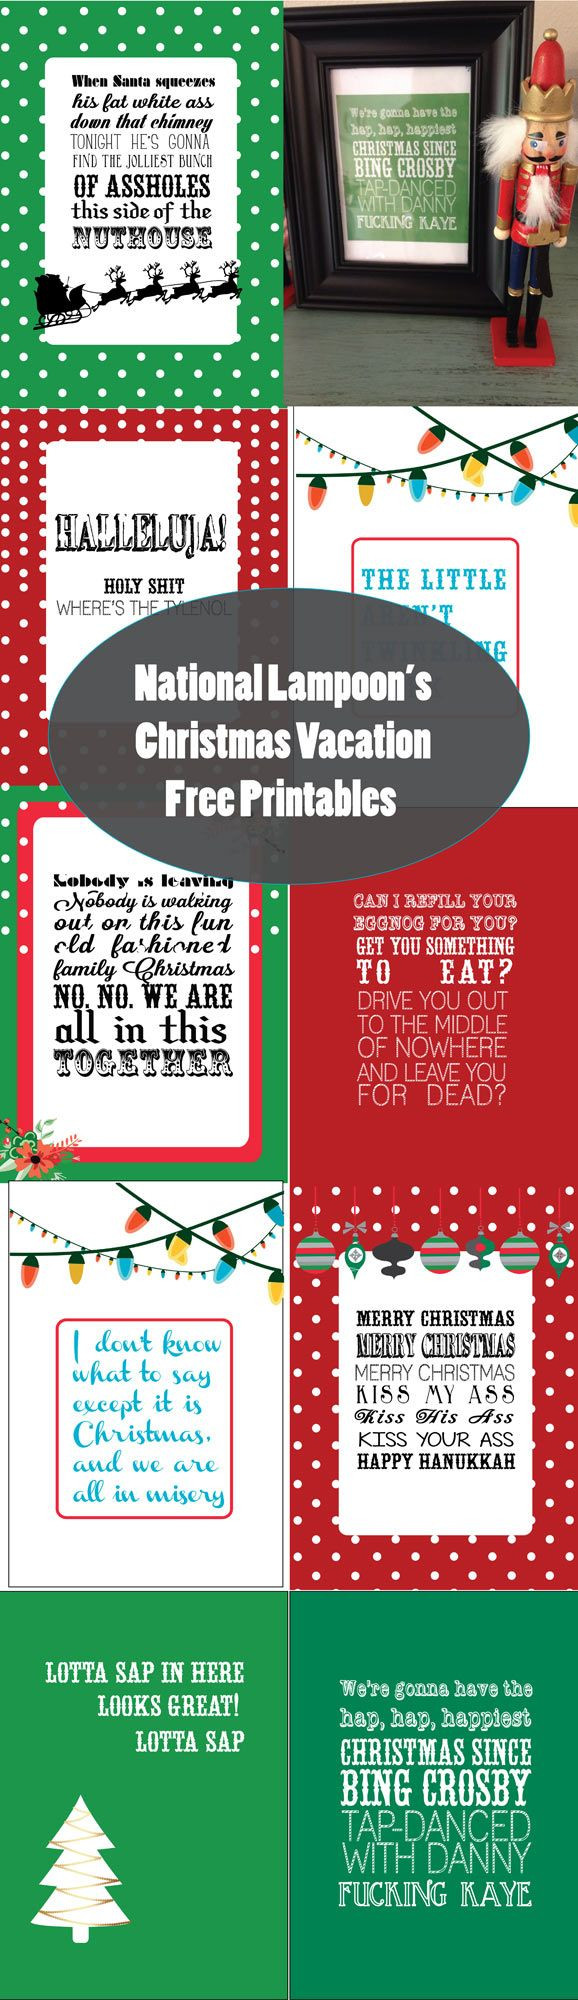 National Lampoons Christmas Vacation Quotes  National Lampoons Christmas Vacation Quotes QuotesGram